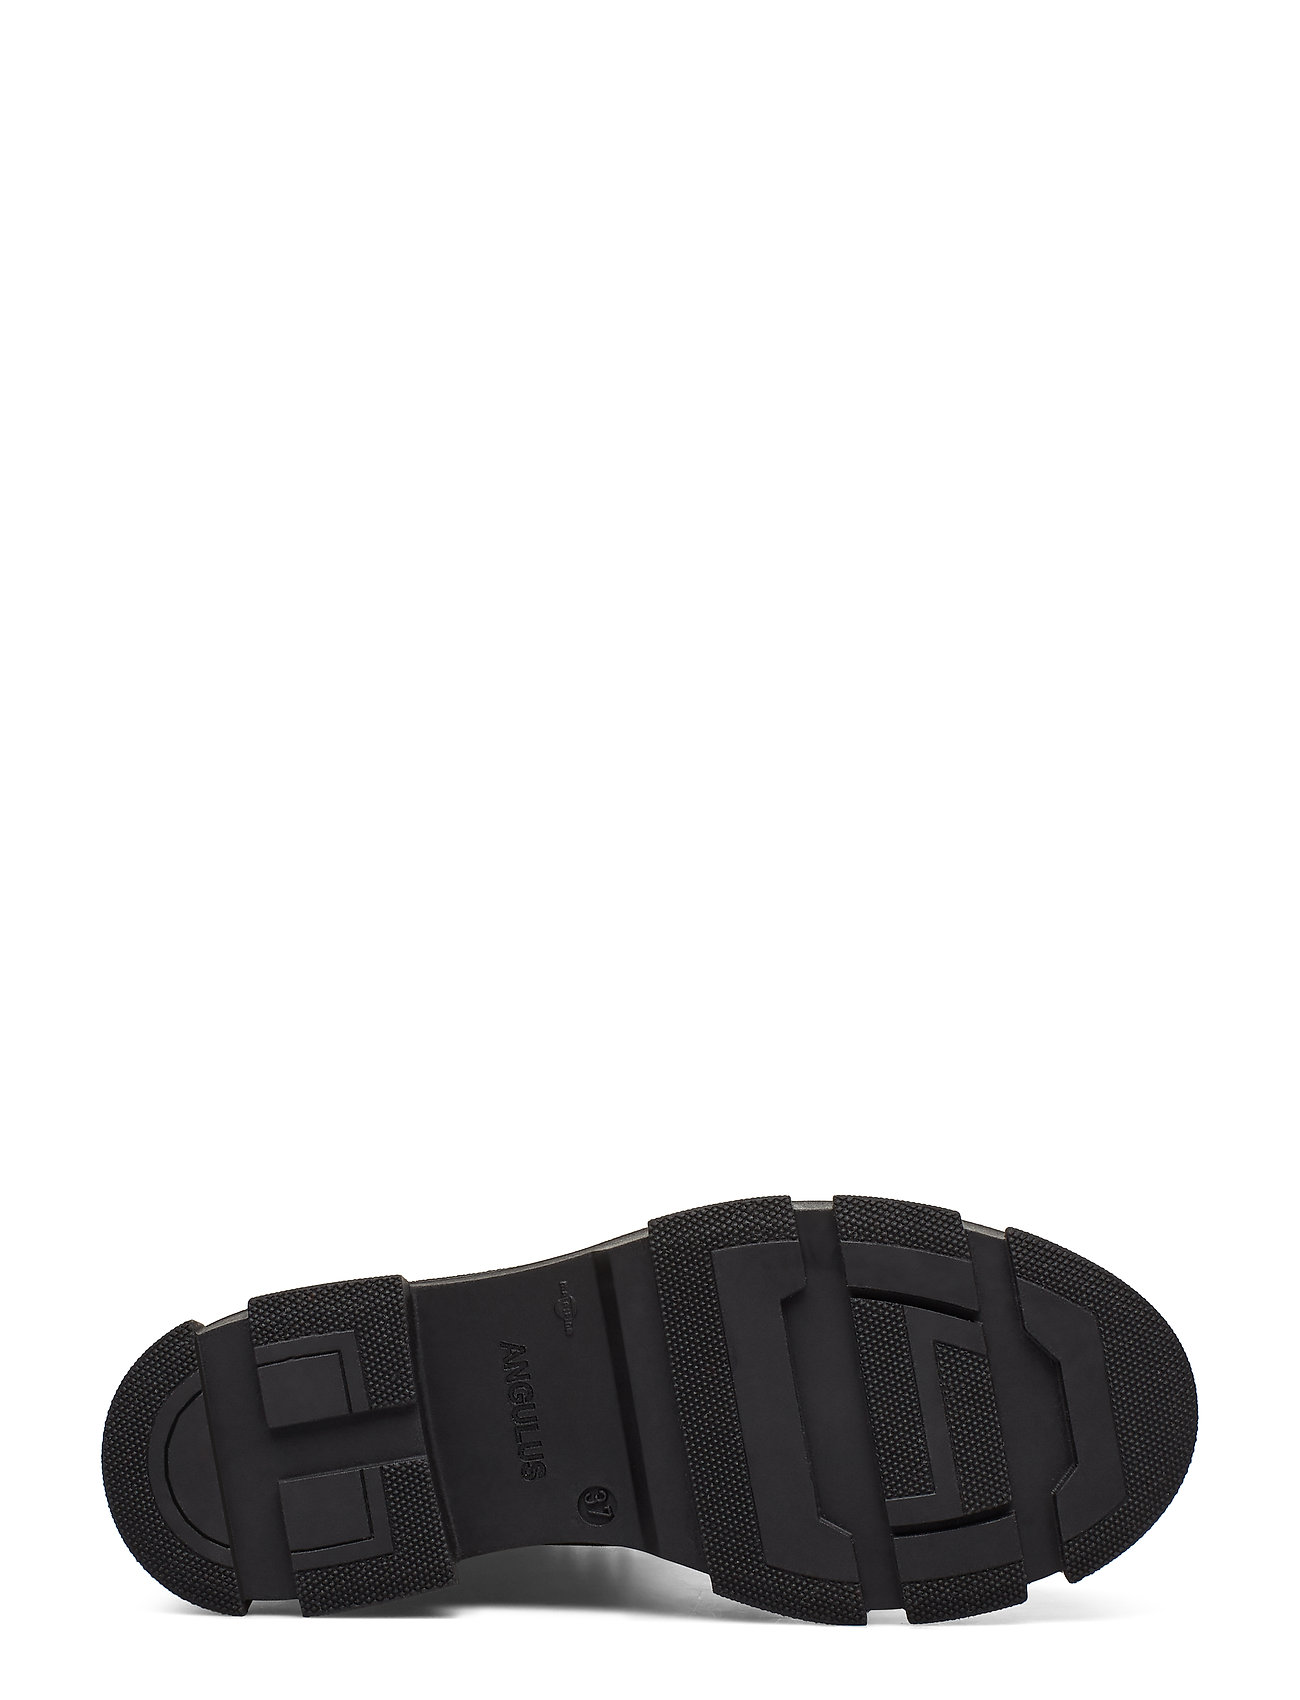 ANGULUS - Boots - flat - with laces - flat ankle boots - 2100/1163 black - 1